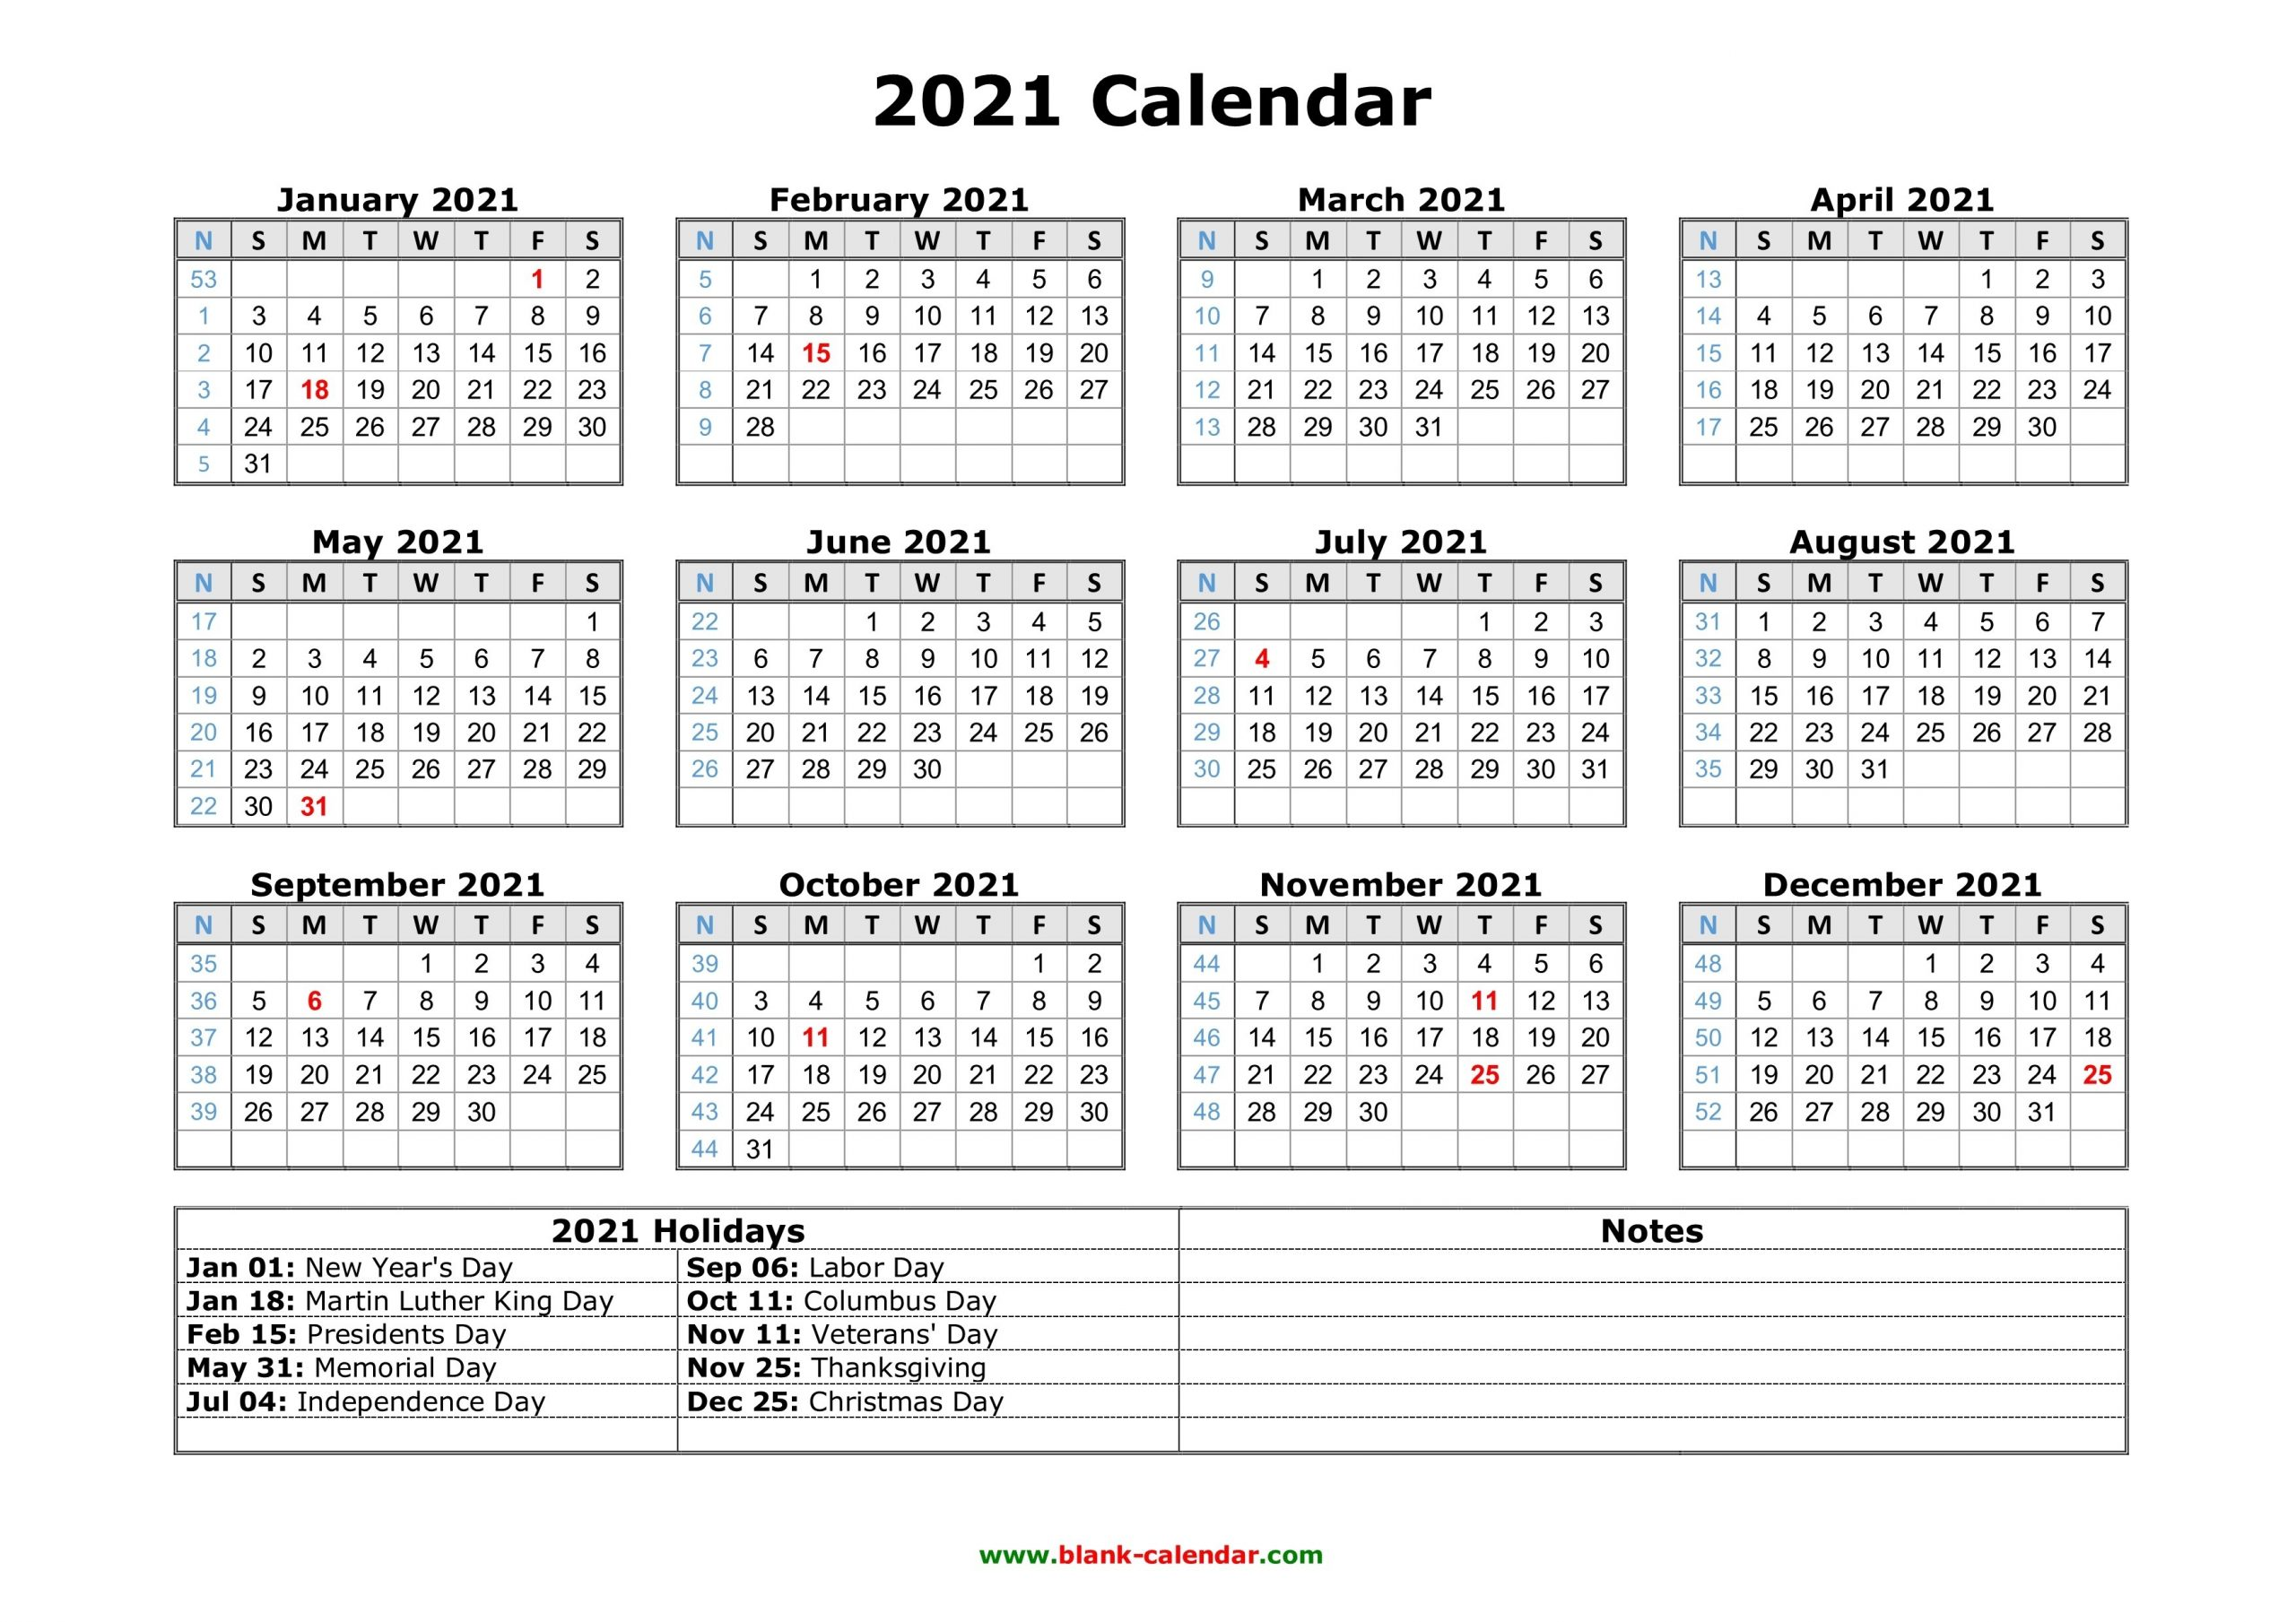 Free Download Printable Calendar 2021 With Us Federal Holidays, One Page, Horizontal. for 2021 Calendar With Date Boxes Photo